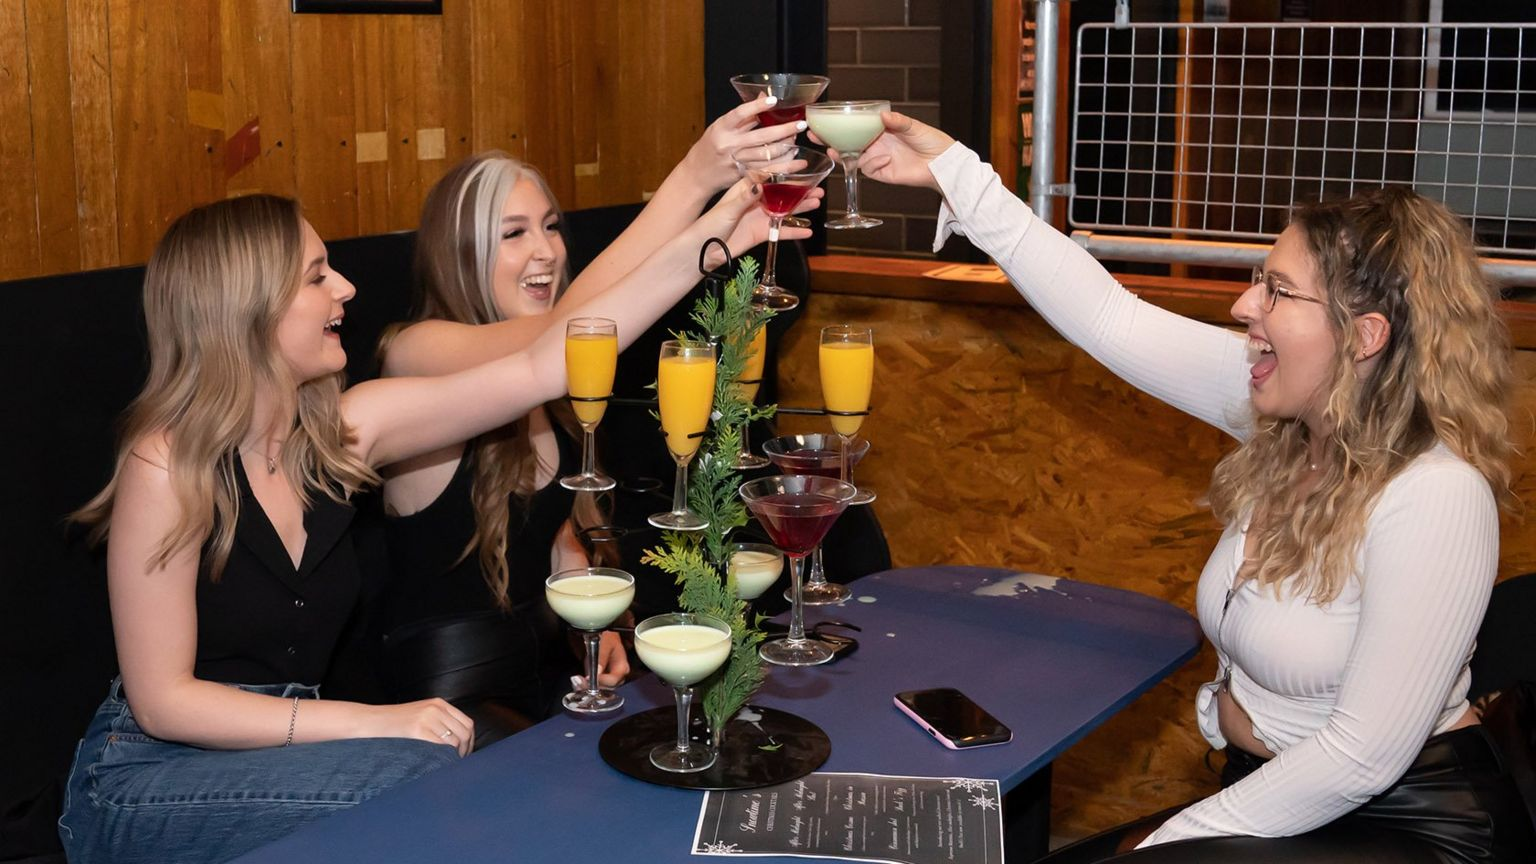 Rosie Delaney, Isobel Loan and Rebecca Mitchell get their first drink at 00:11 at the Showtime Bar in Huddersfield, West Yorkshire